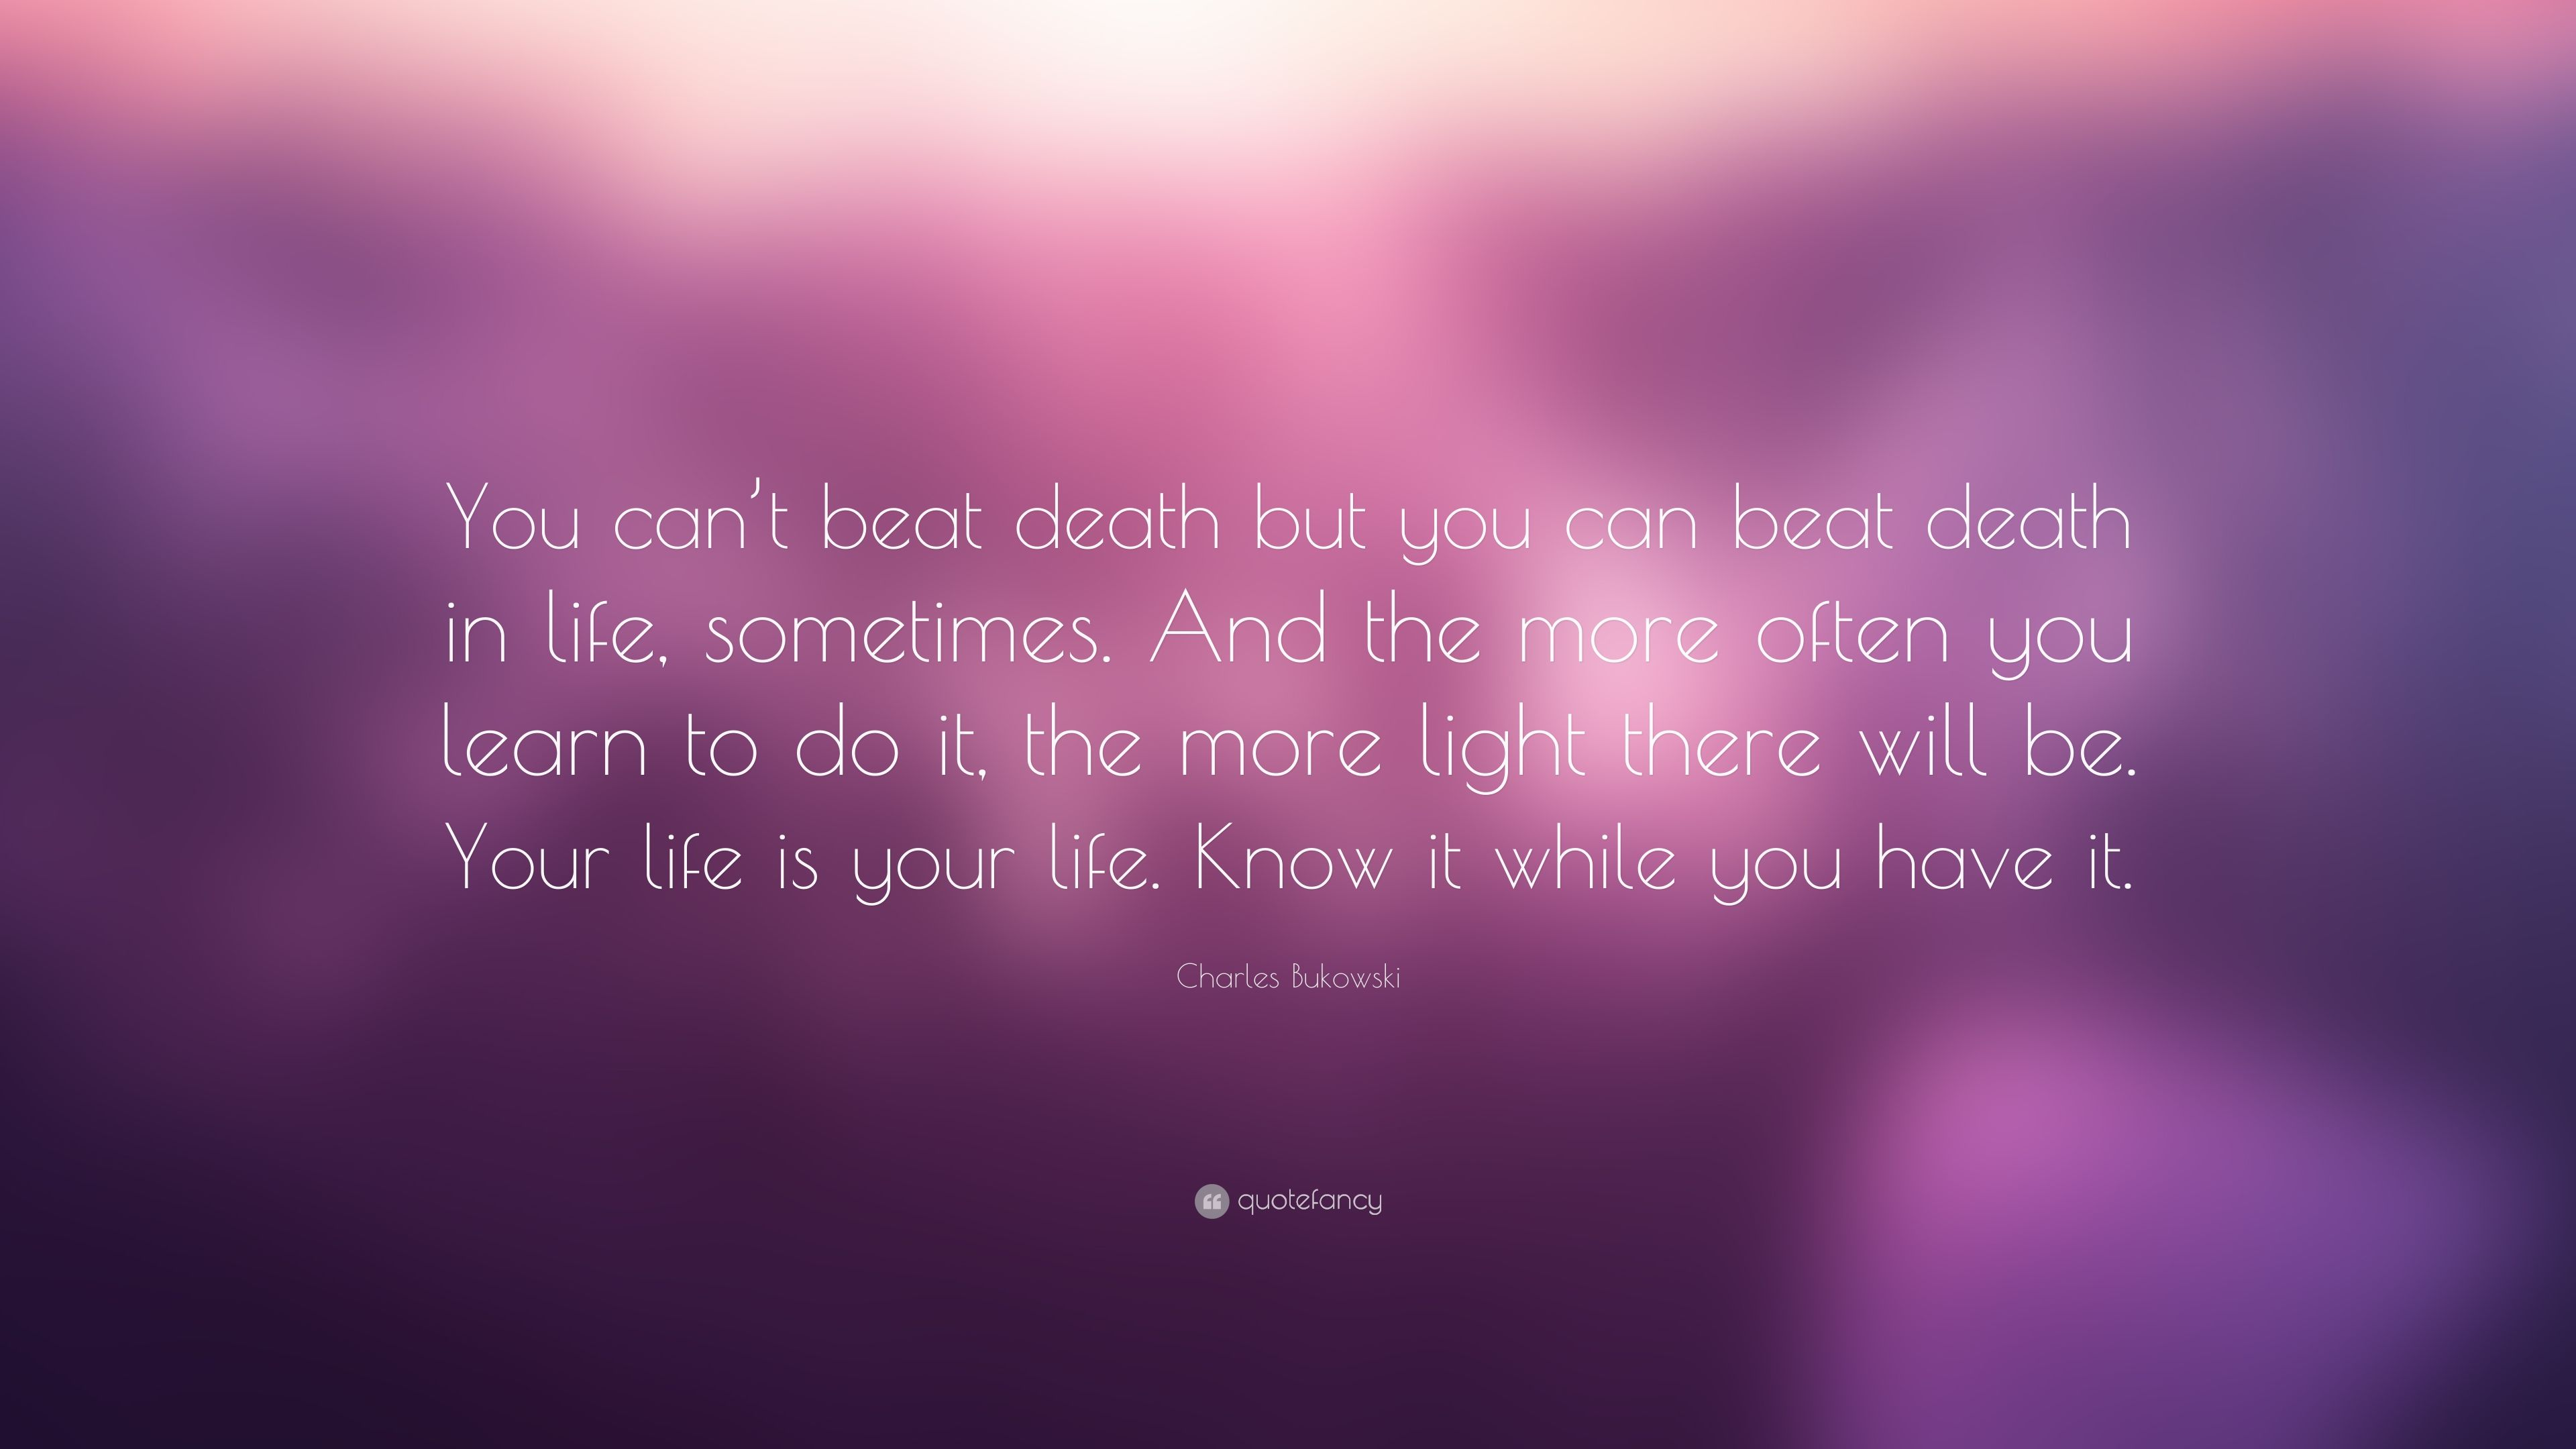 Charles Bukowski Quote You Cant Beat Death But You Can Beat Death